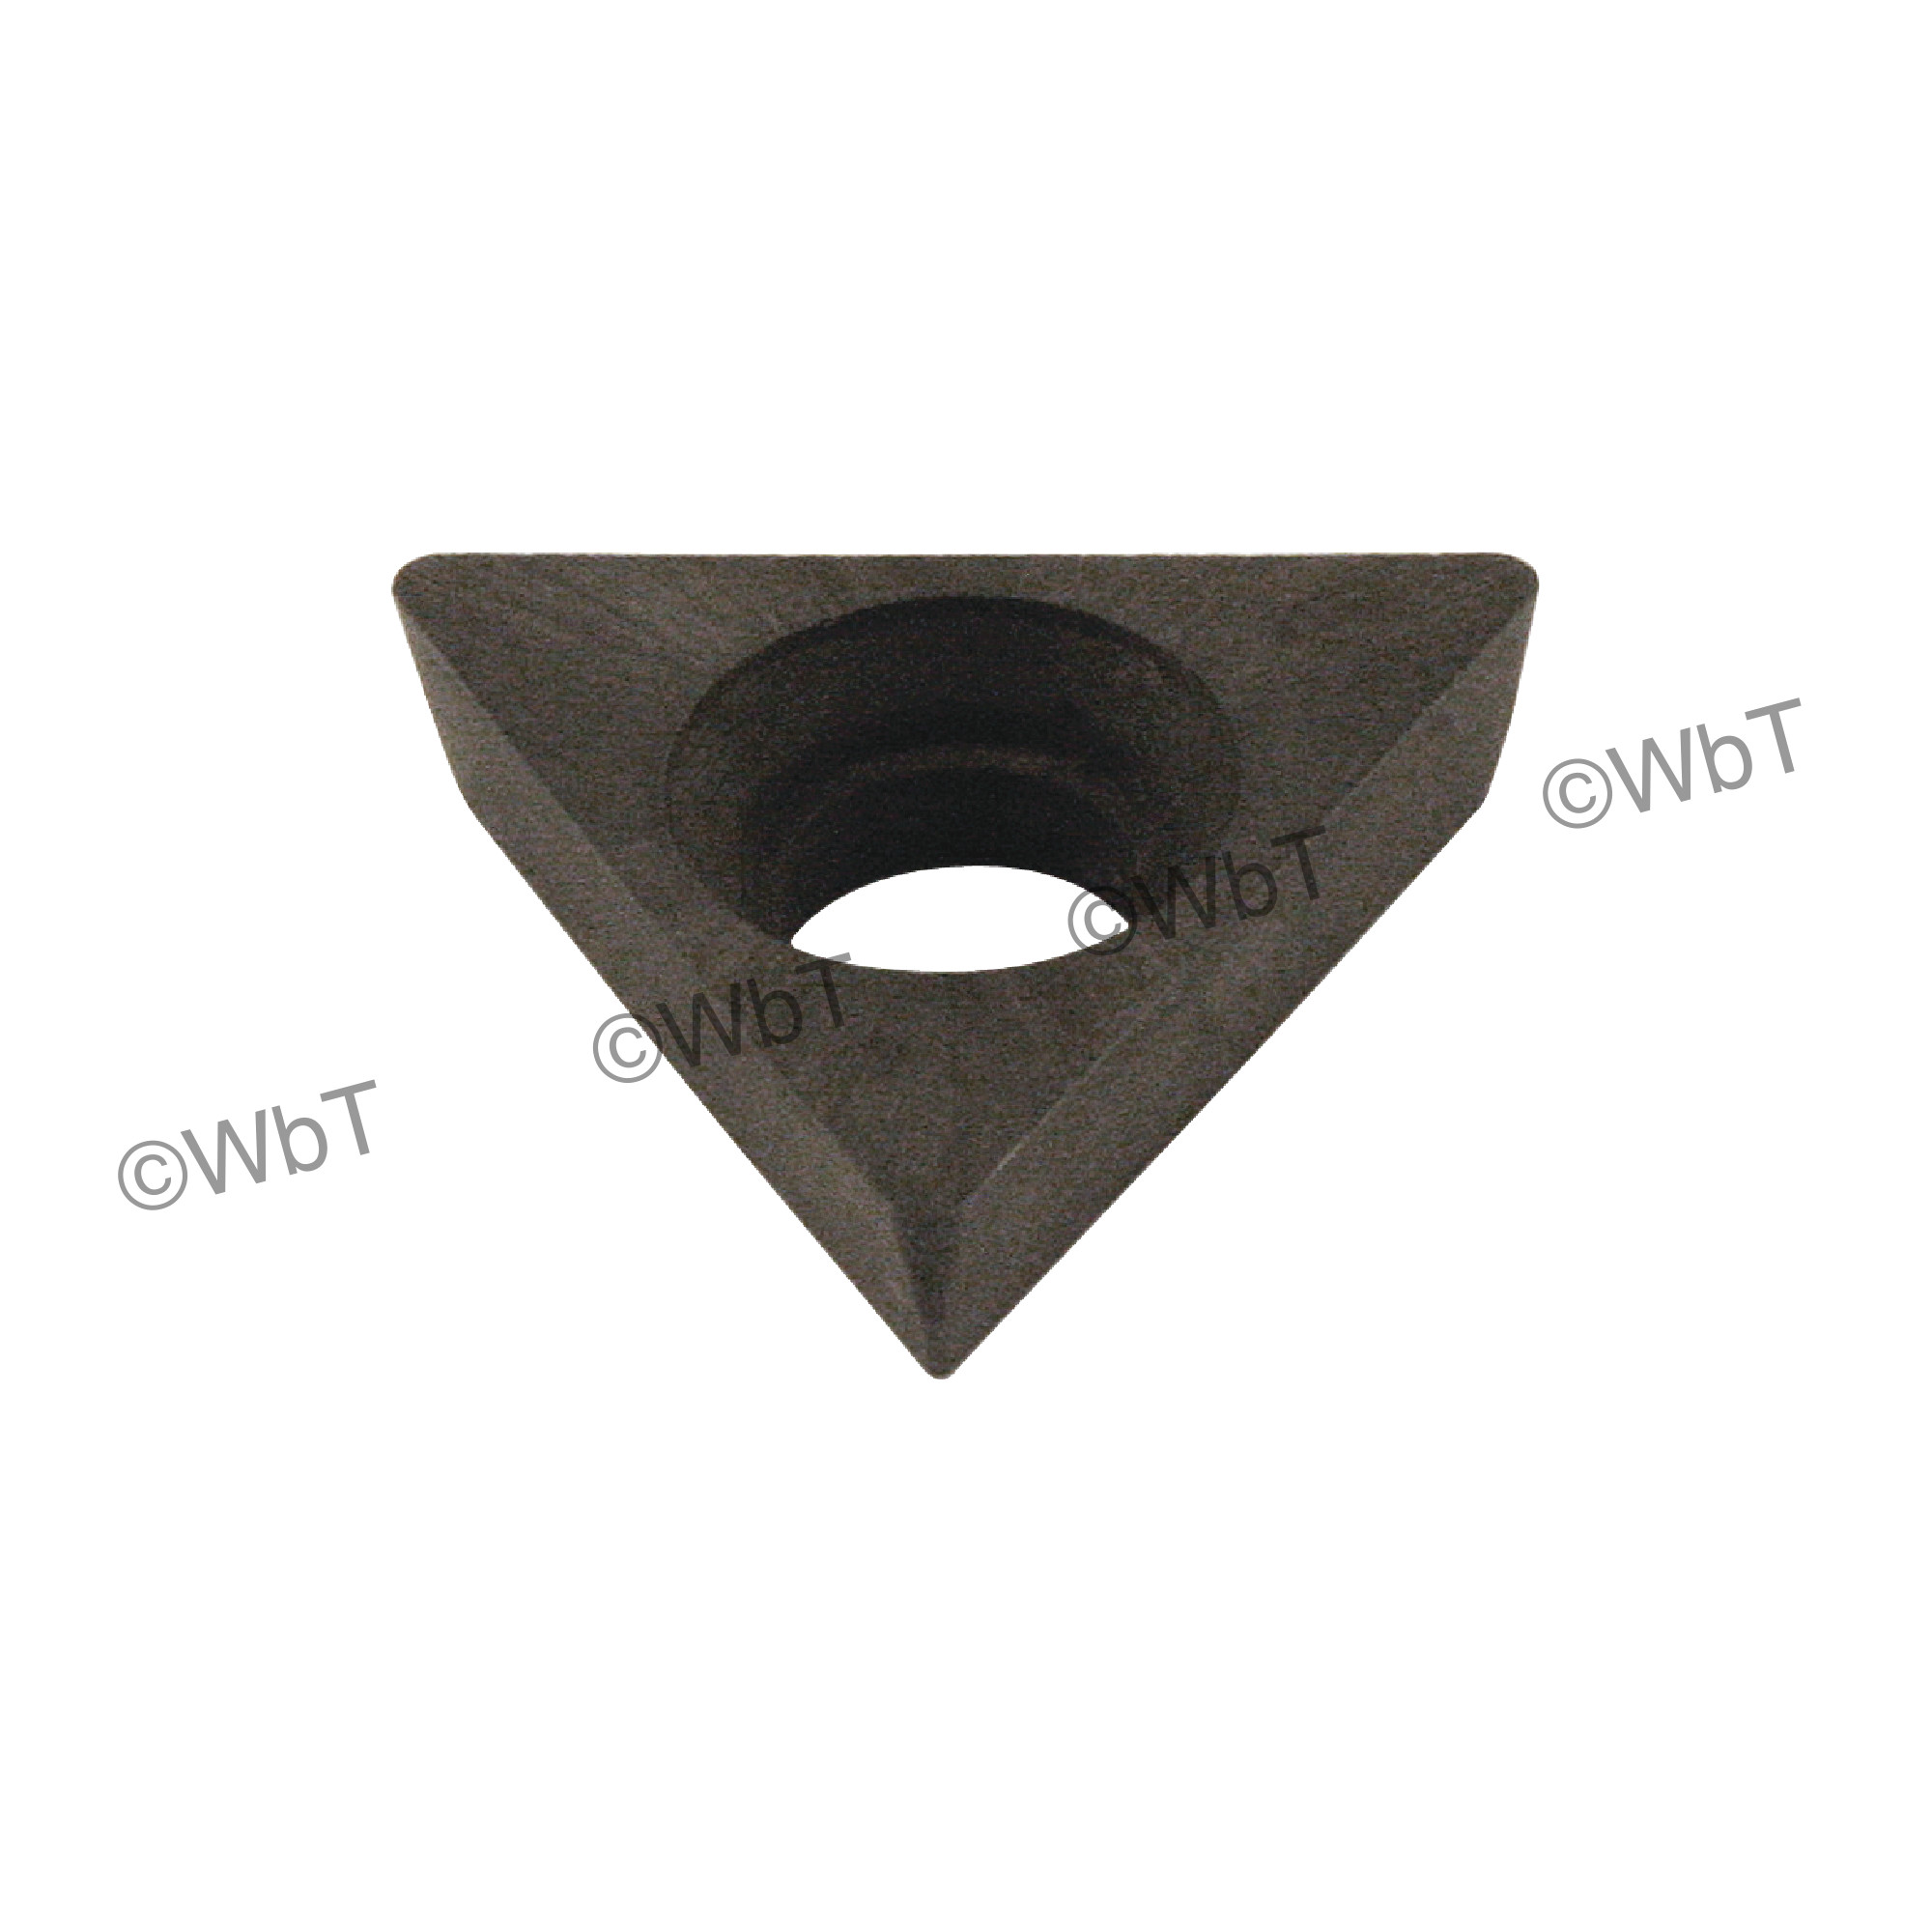 TTC PRODUCTION Spare part for Indexable Boring Bar - MODEL: 6-999-391